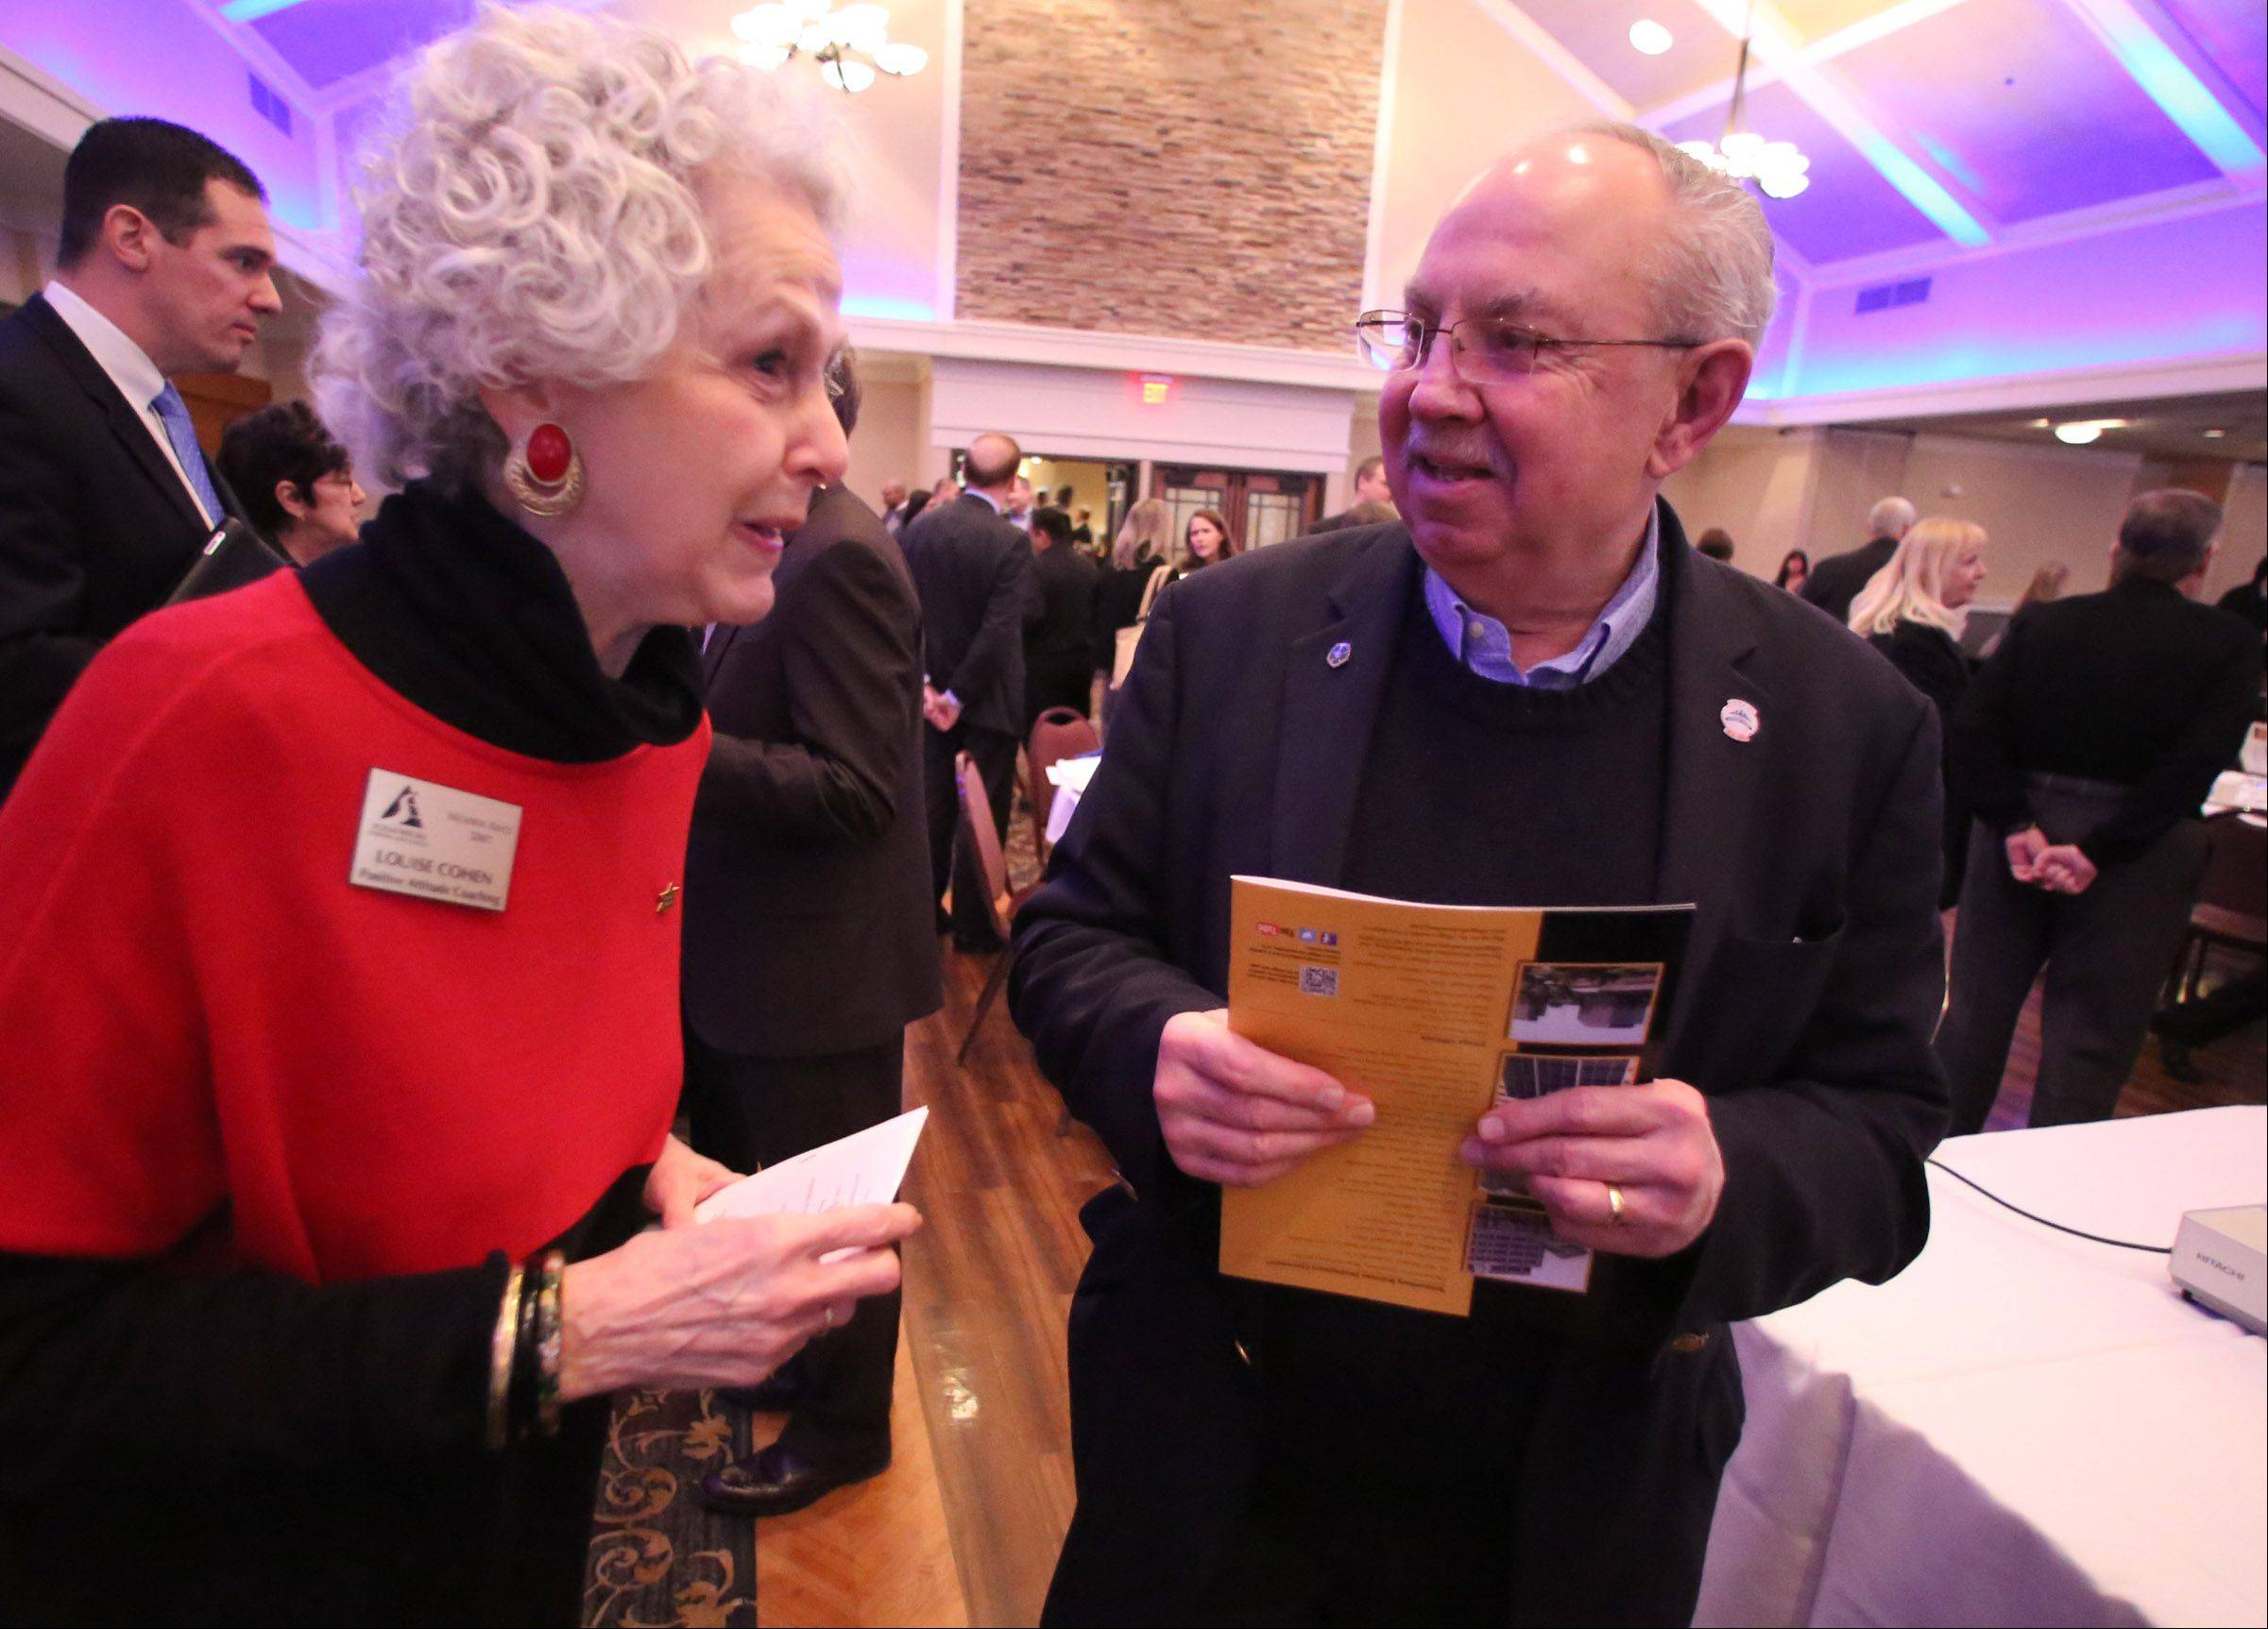 Schaumburg Mayor Al Larson speaks with Louise Cohen, owner of The Positive Attitude Coaching Program, after he delivered his annual state-of-the-village address and preview of the year ahead at the Schaumburg Business Association's monthly breakfast meeting Tuesday.